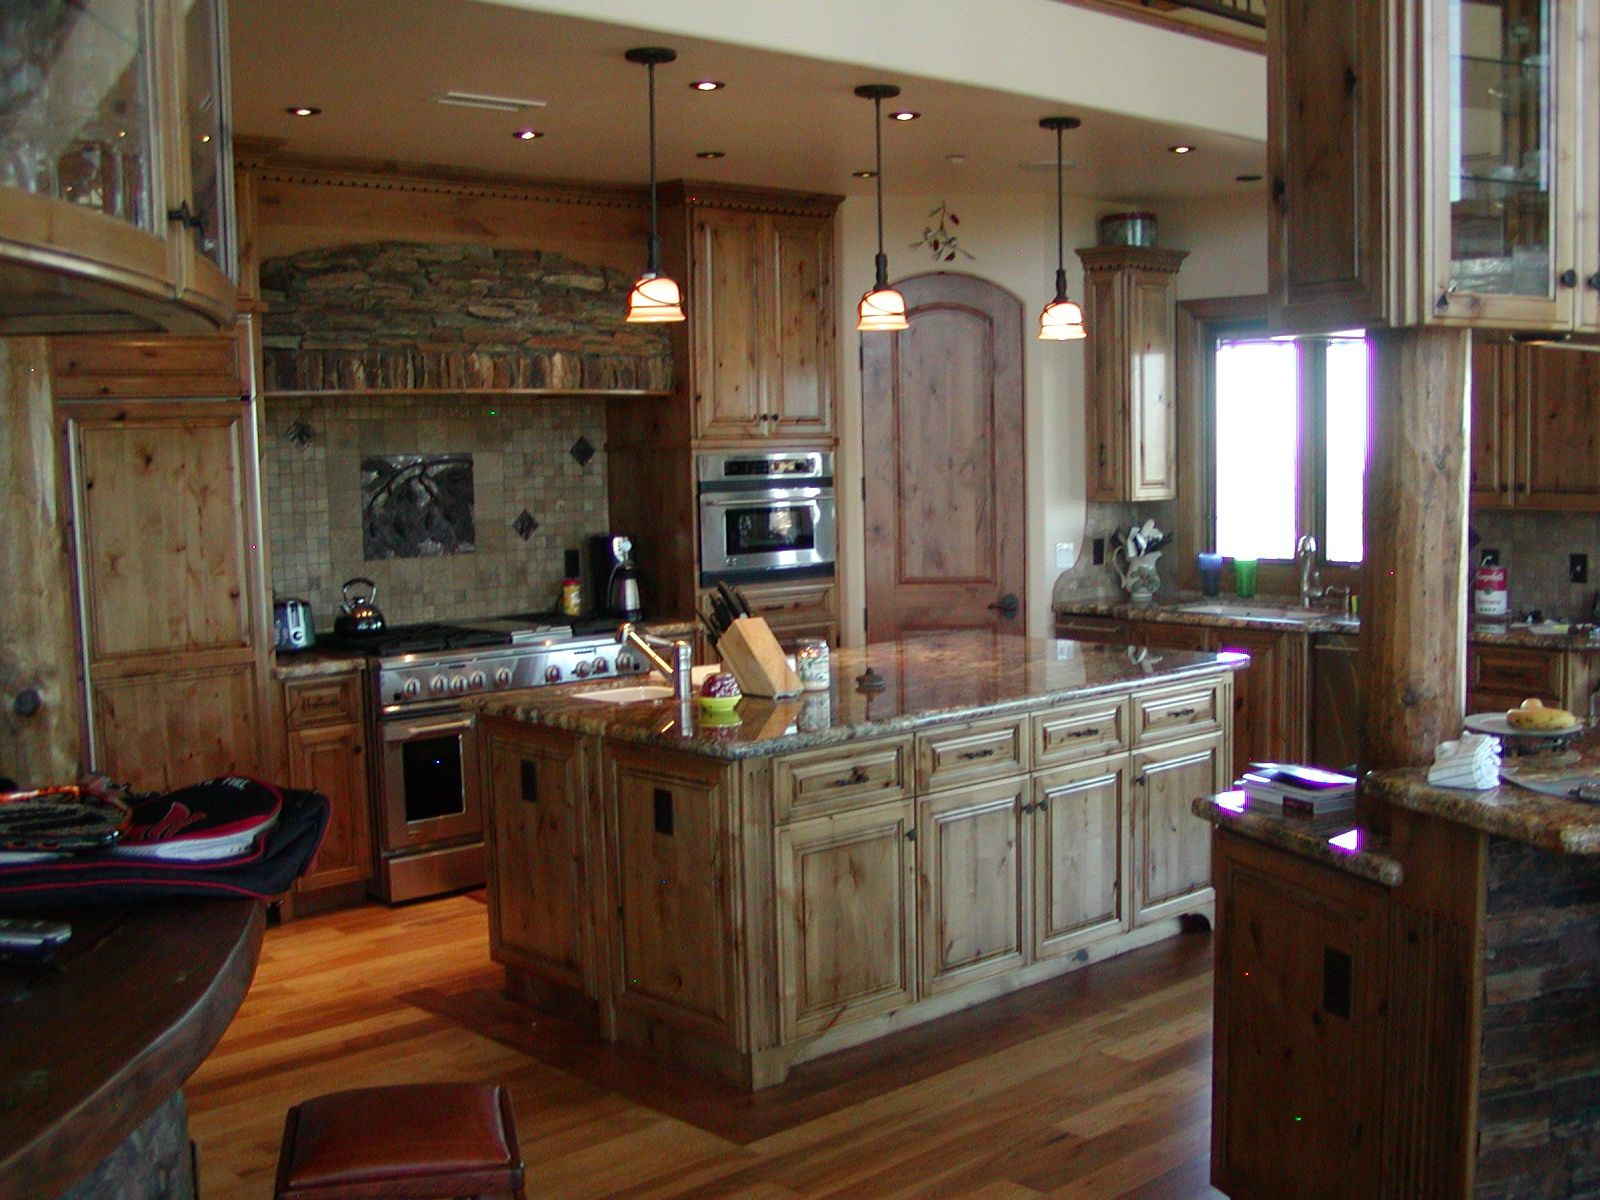 Custom Made Kitchen Cabinets hand crafted knotty alder custom made kitchen cabinets, etc.